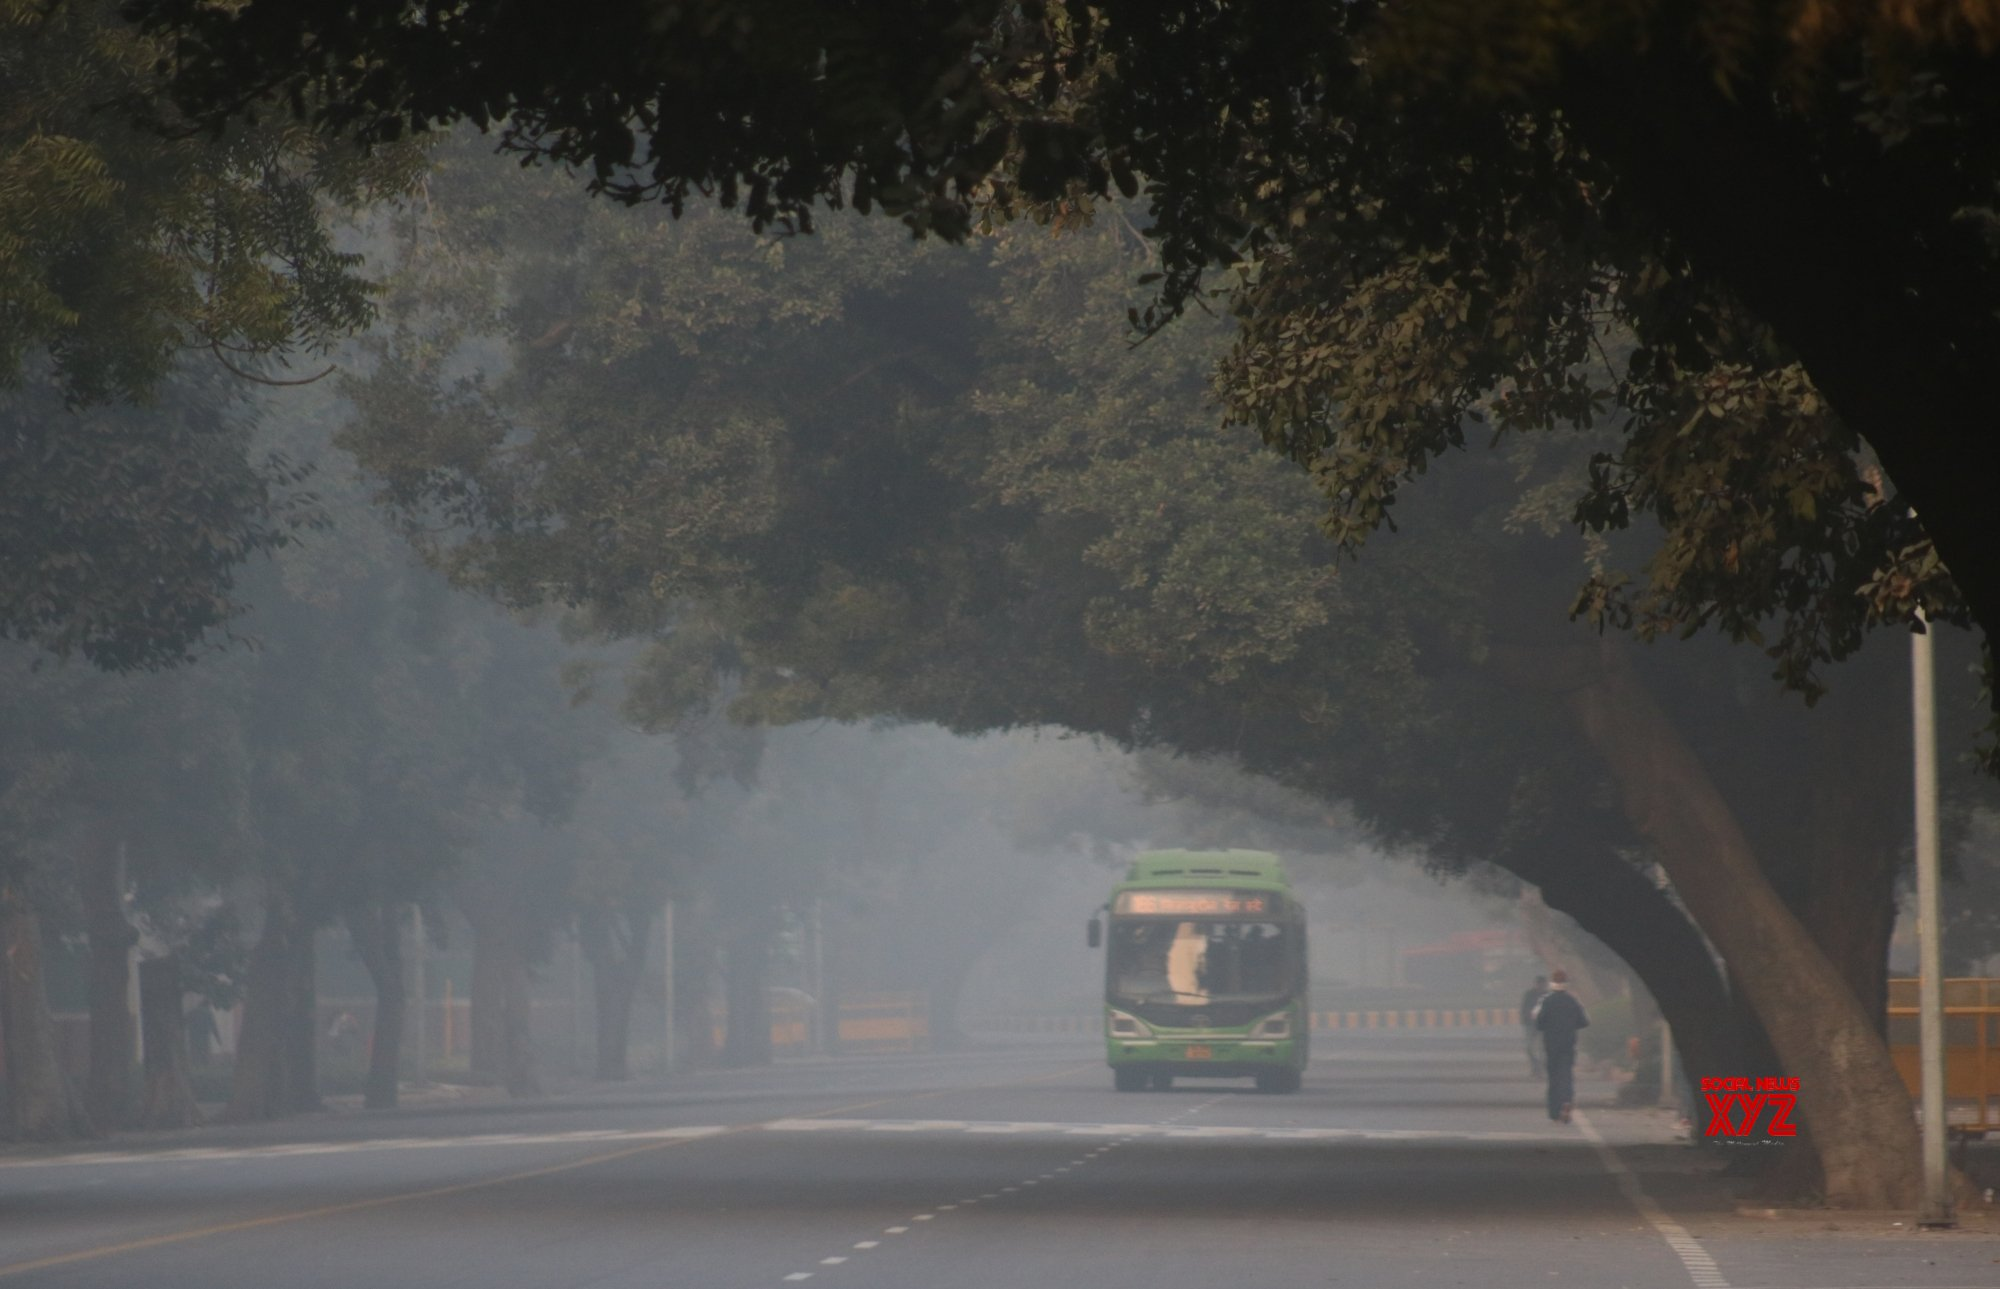 Delhi residents wake up to coldest Nov morning in 17 years